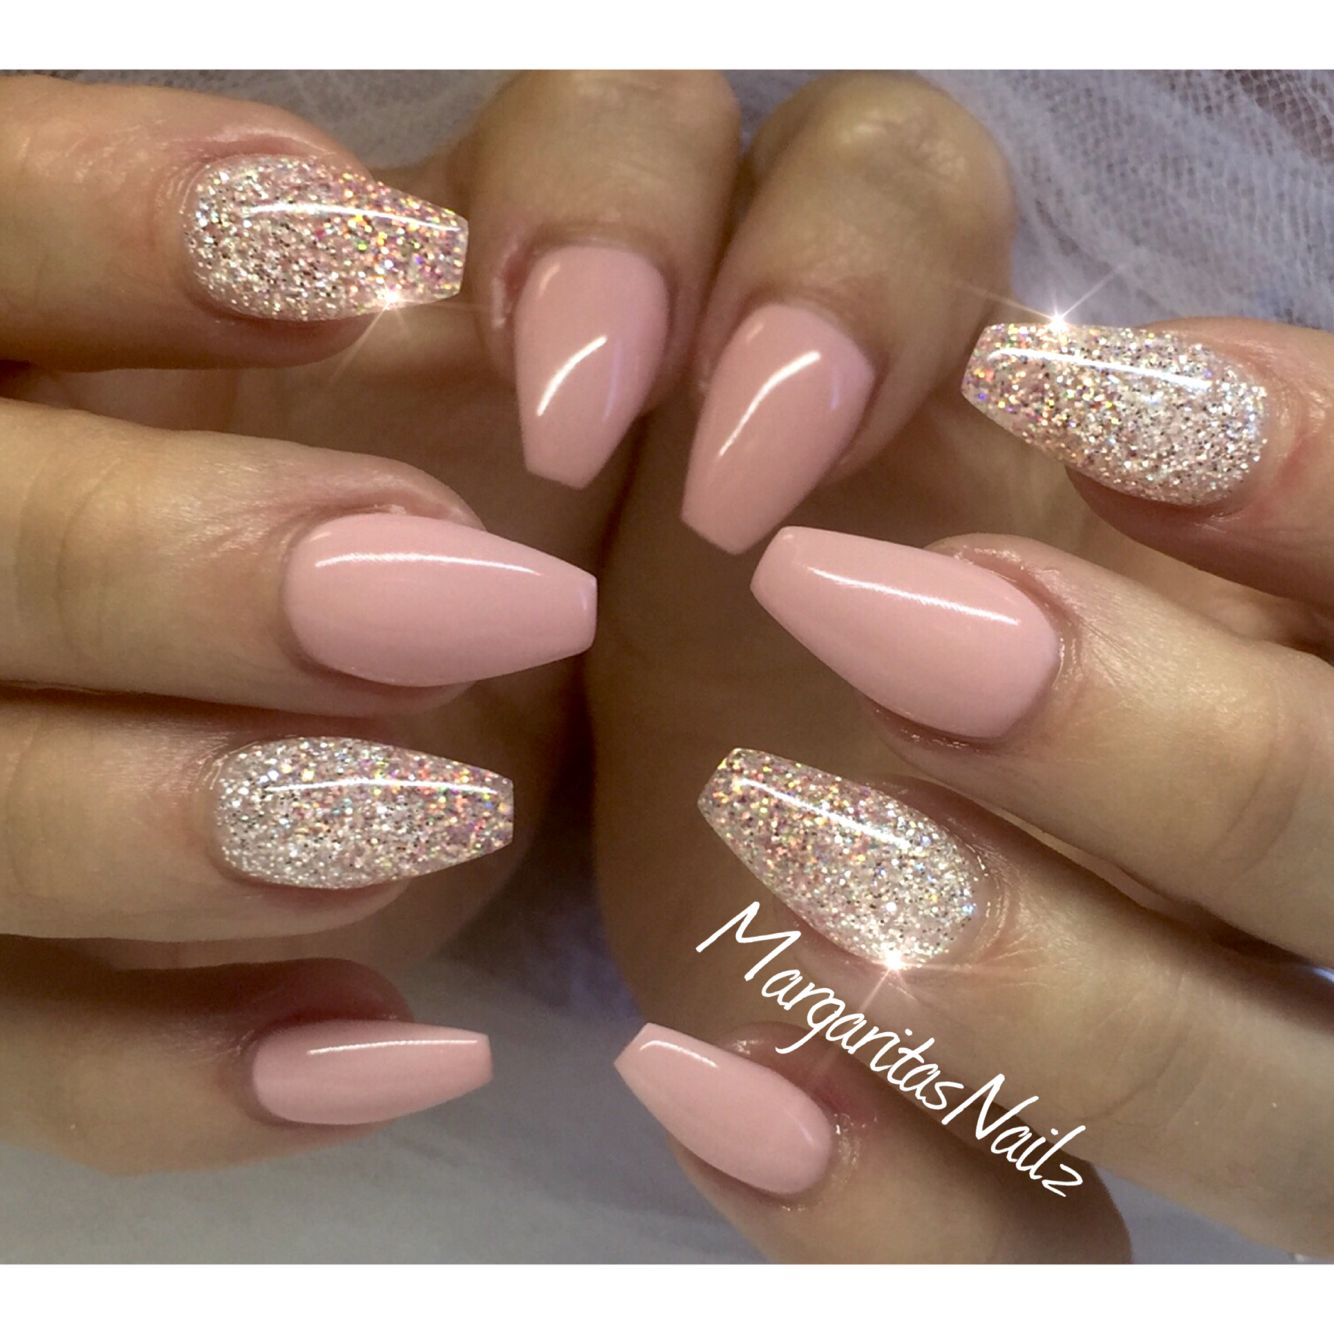 Pink and silver nails - Nude Pink Glitter Nails More